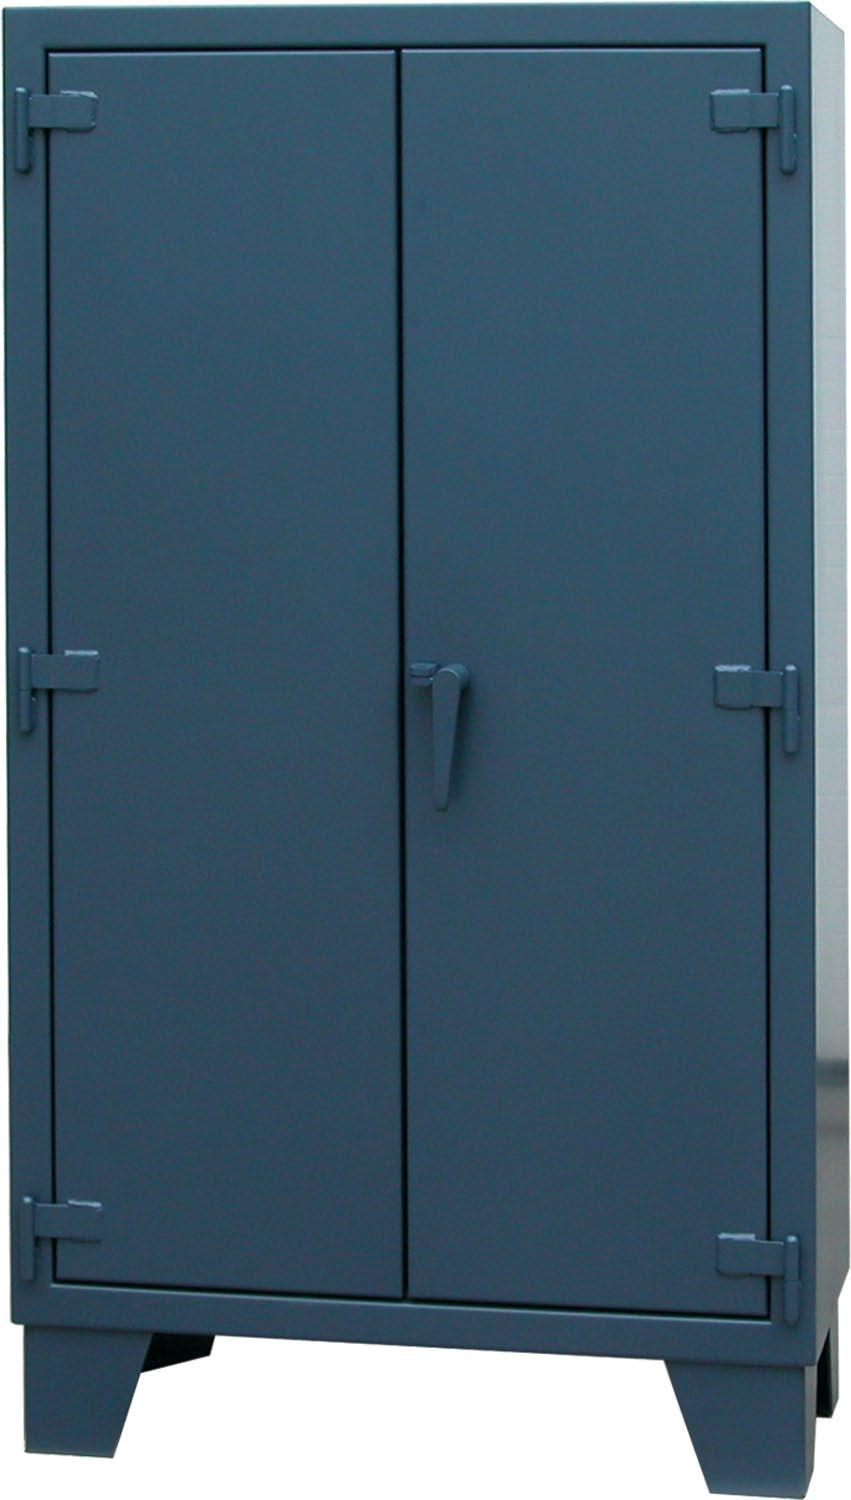 Storage Cabinets EX-Series Storage Cabinets Our Extreme Duty storage cabinets set the standard for heavy duty storage.